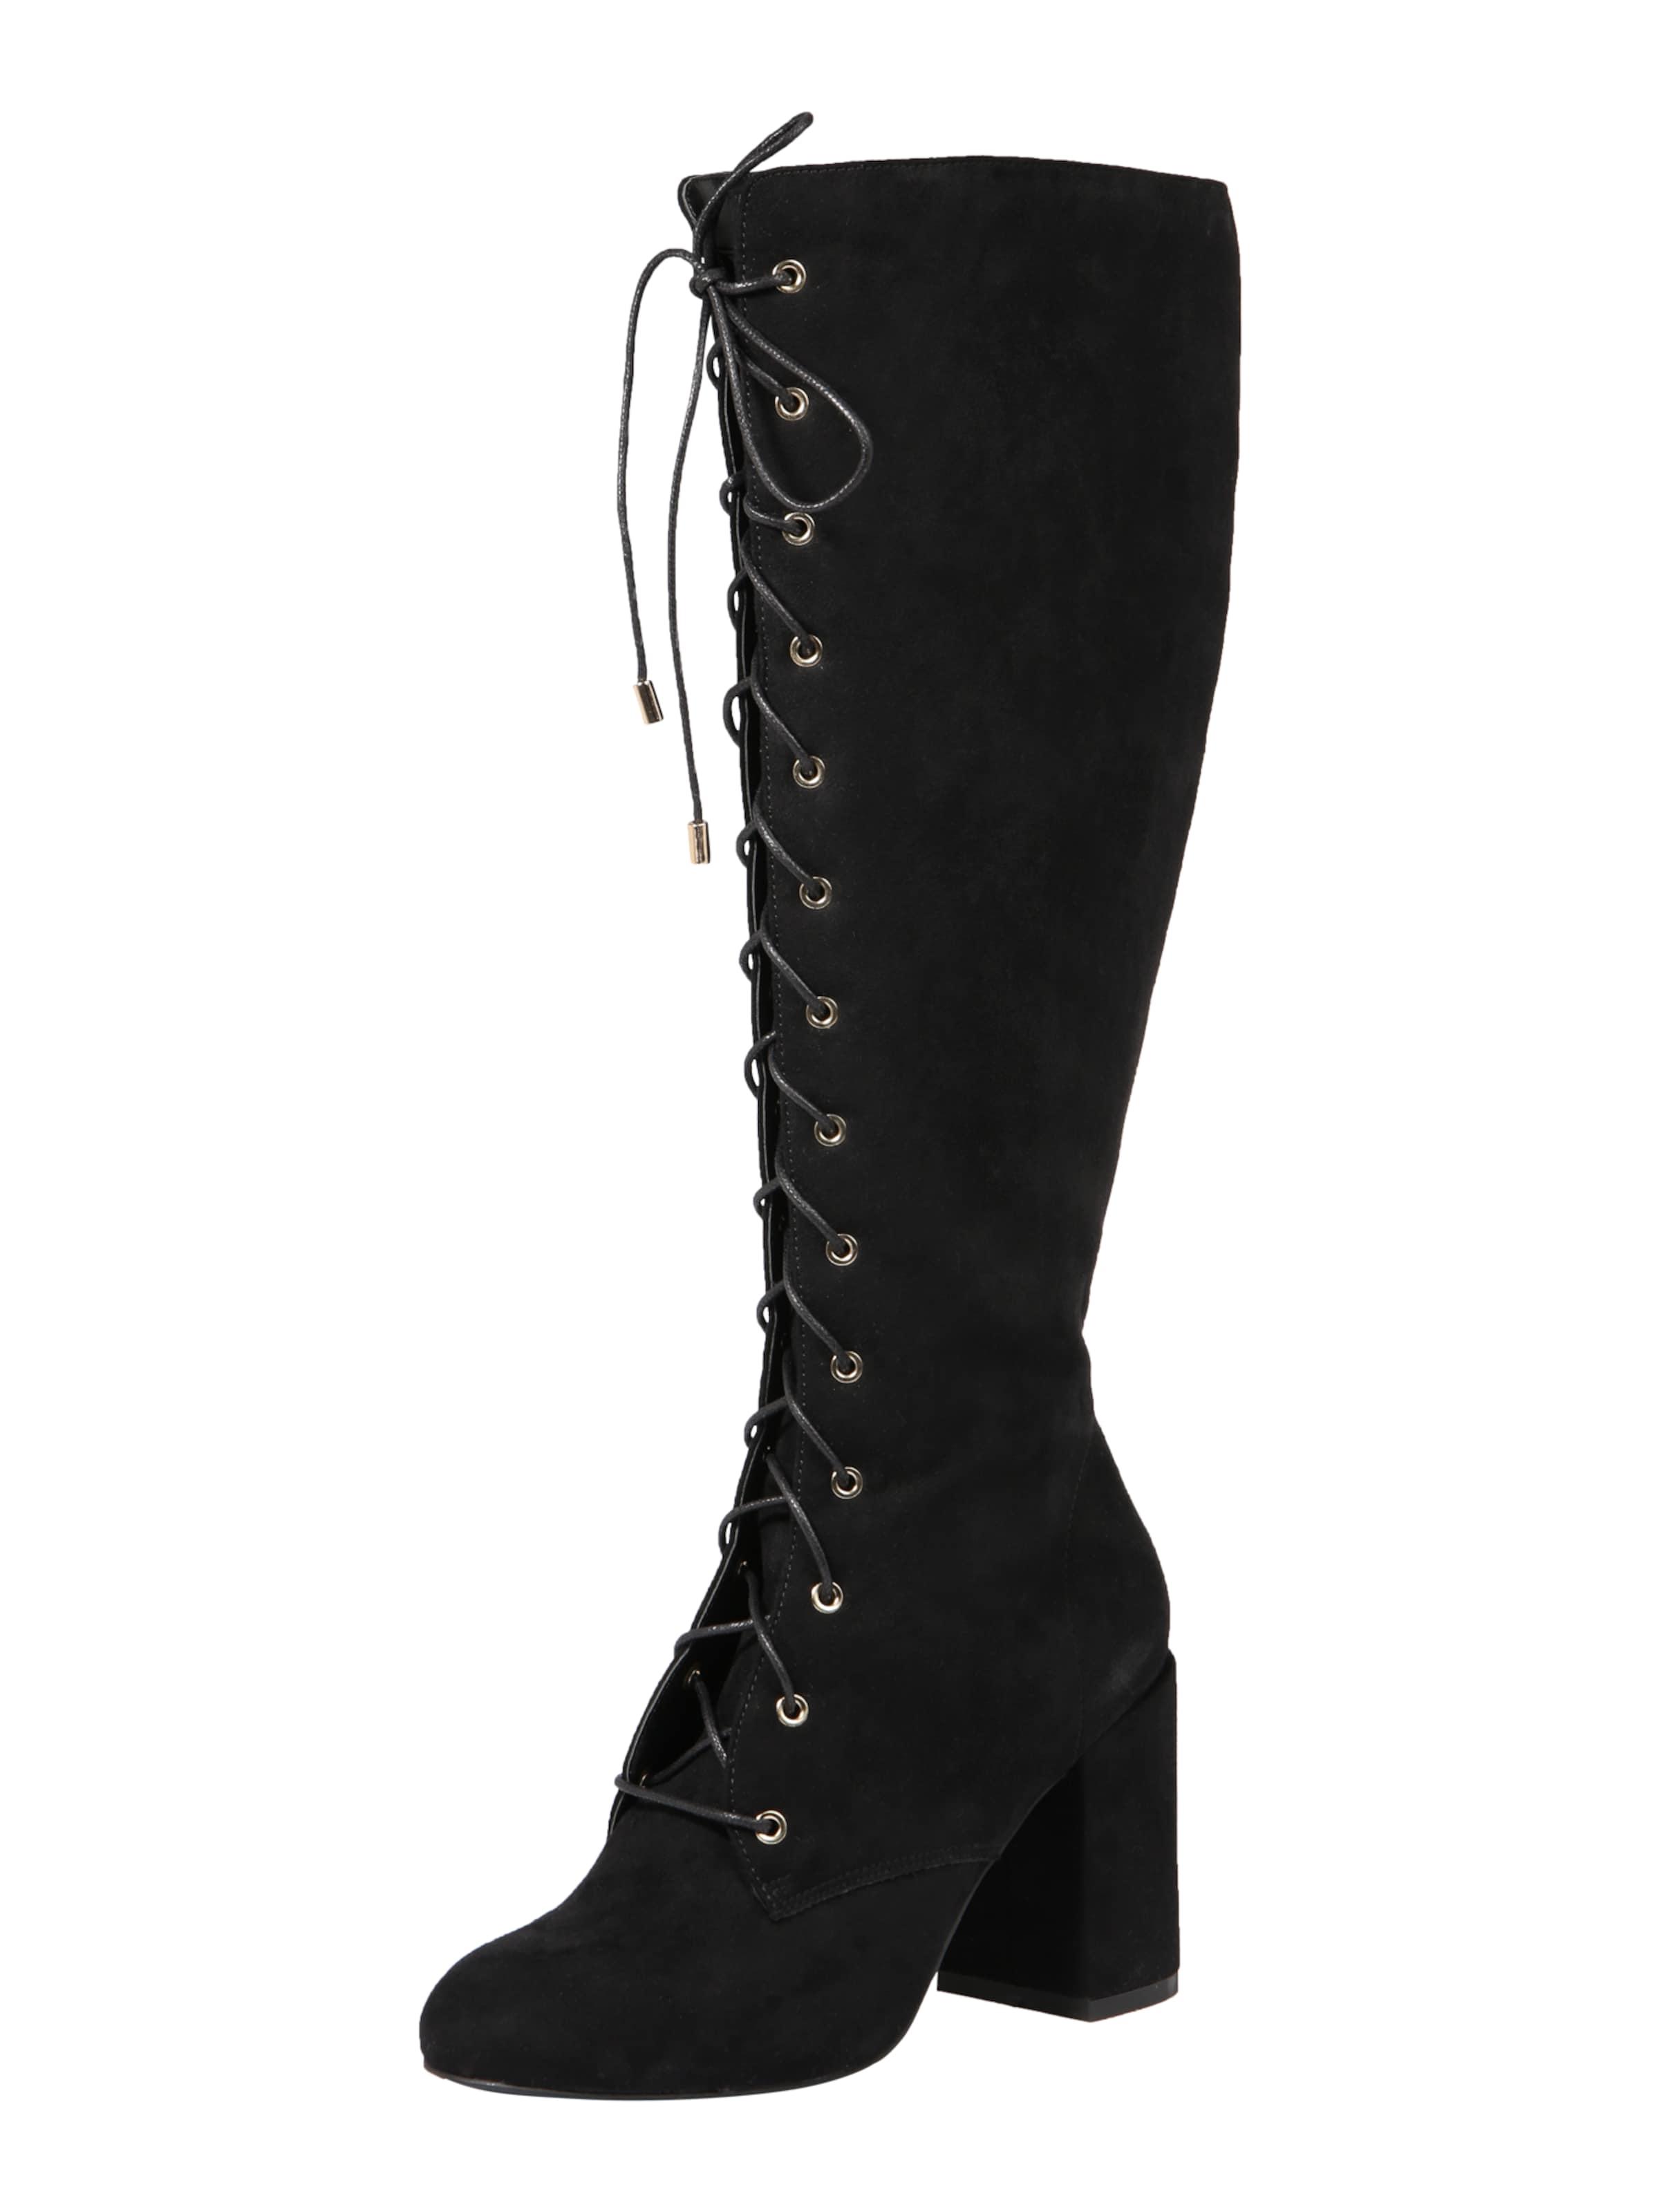 ABOUT YOU Stiefel 'Femke' in schwarz